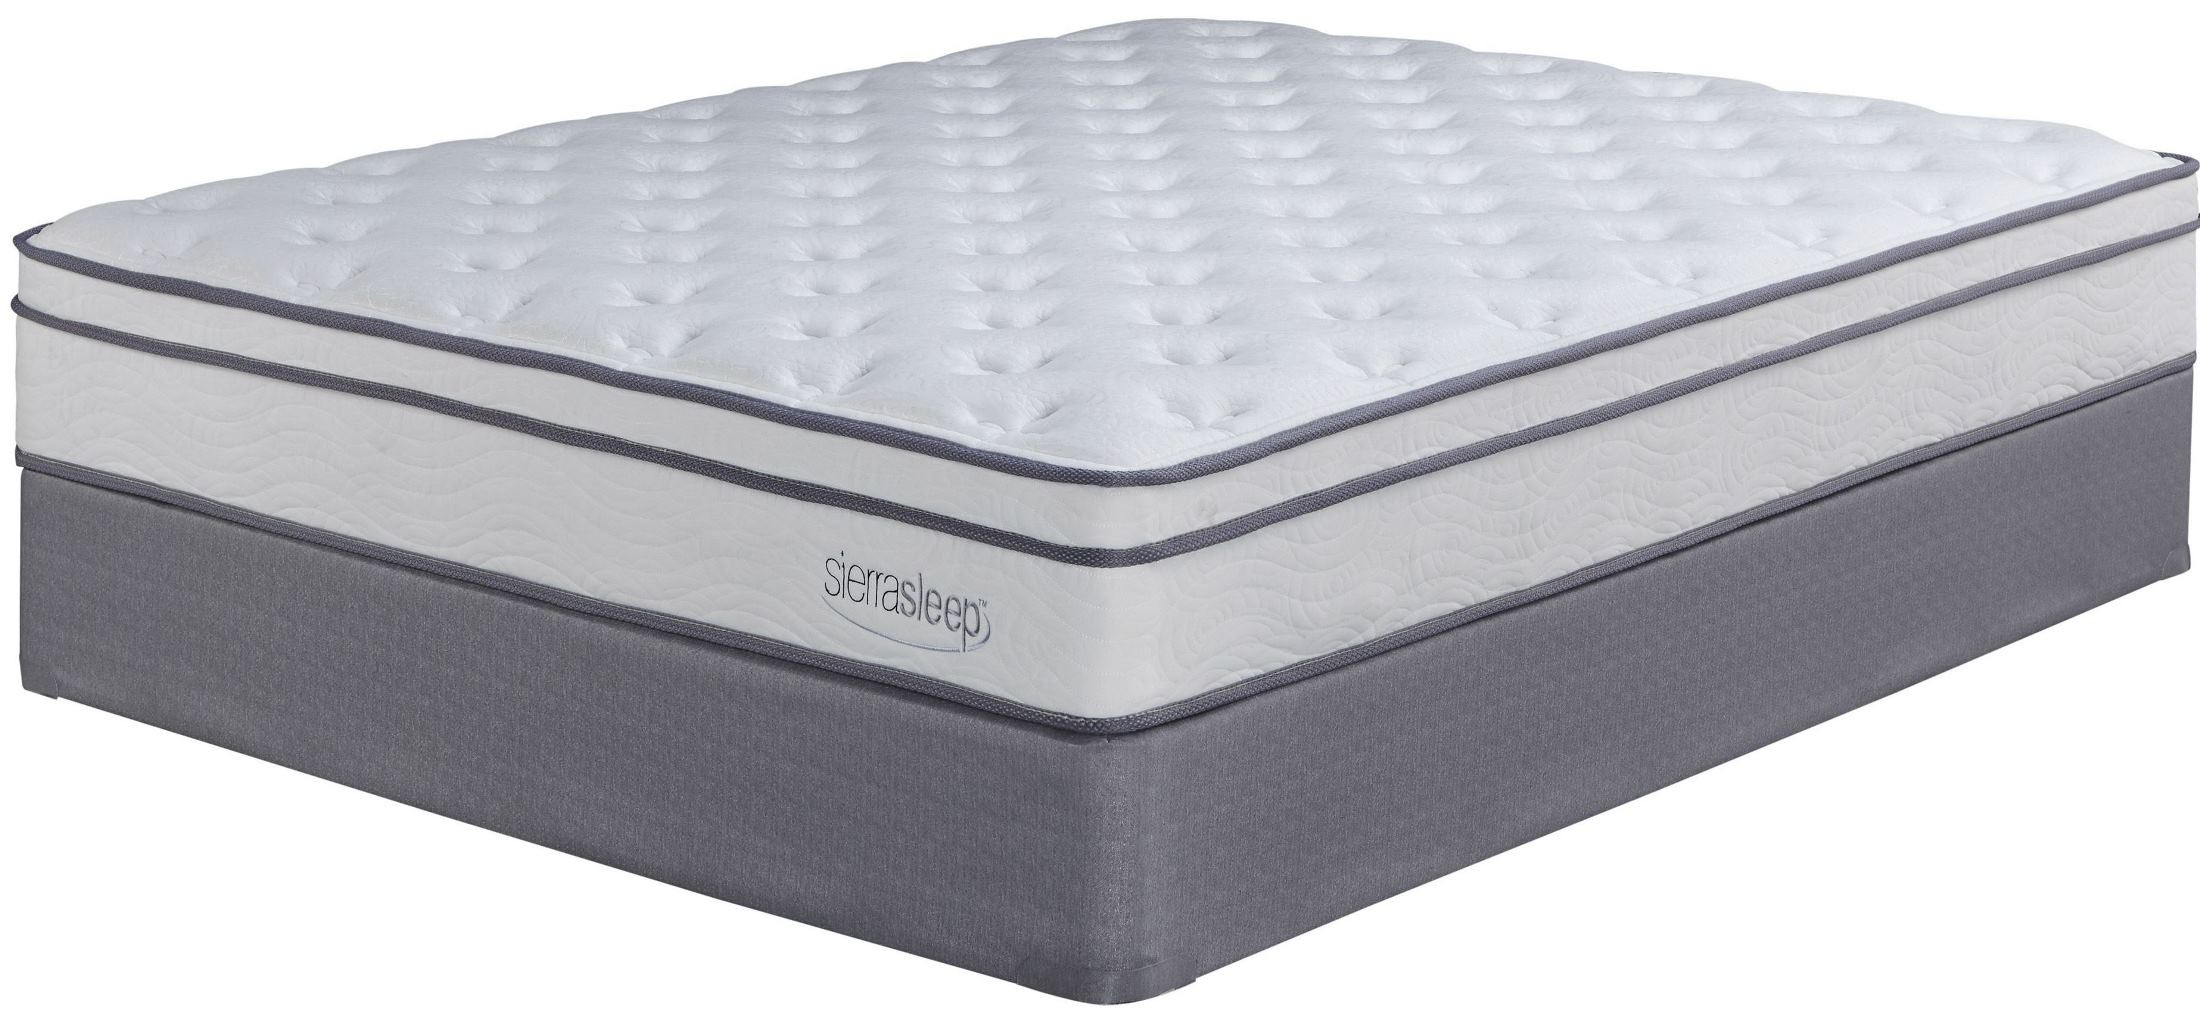 Longs Peak Ltd White Twin Mattress From Ashley M90711 Coleman Furniture